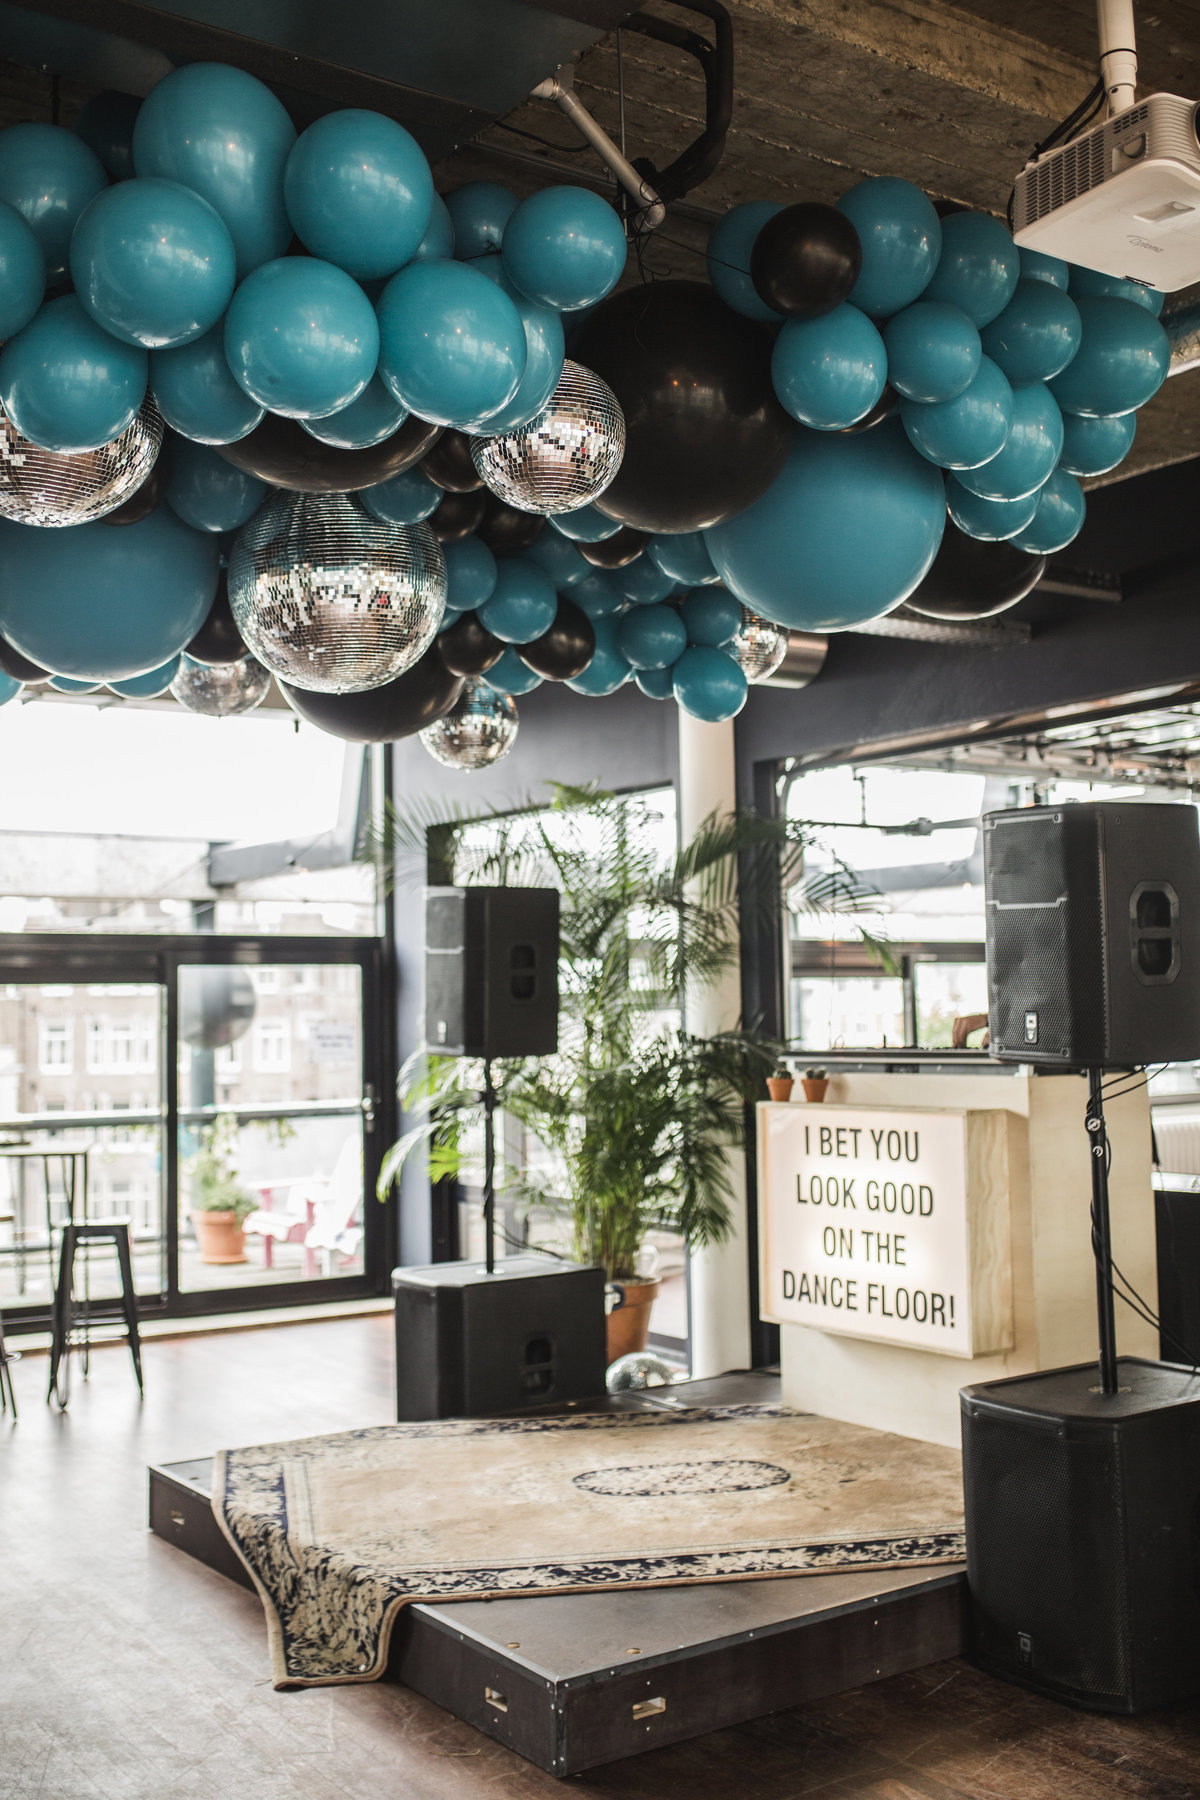 Fashiontrade.com Office Warming Party 27.06.2017 | Samantha Bosdijk Photography-14